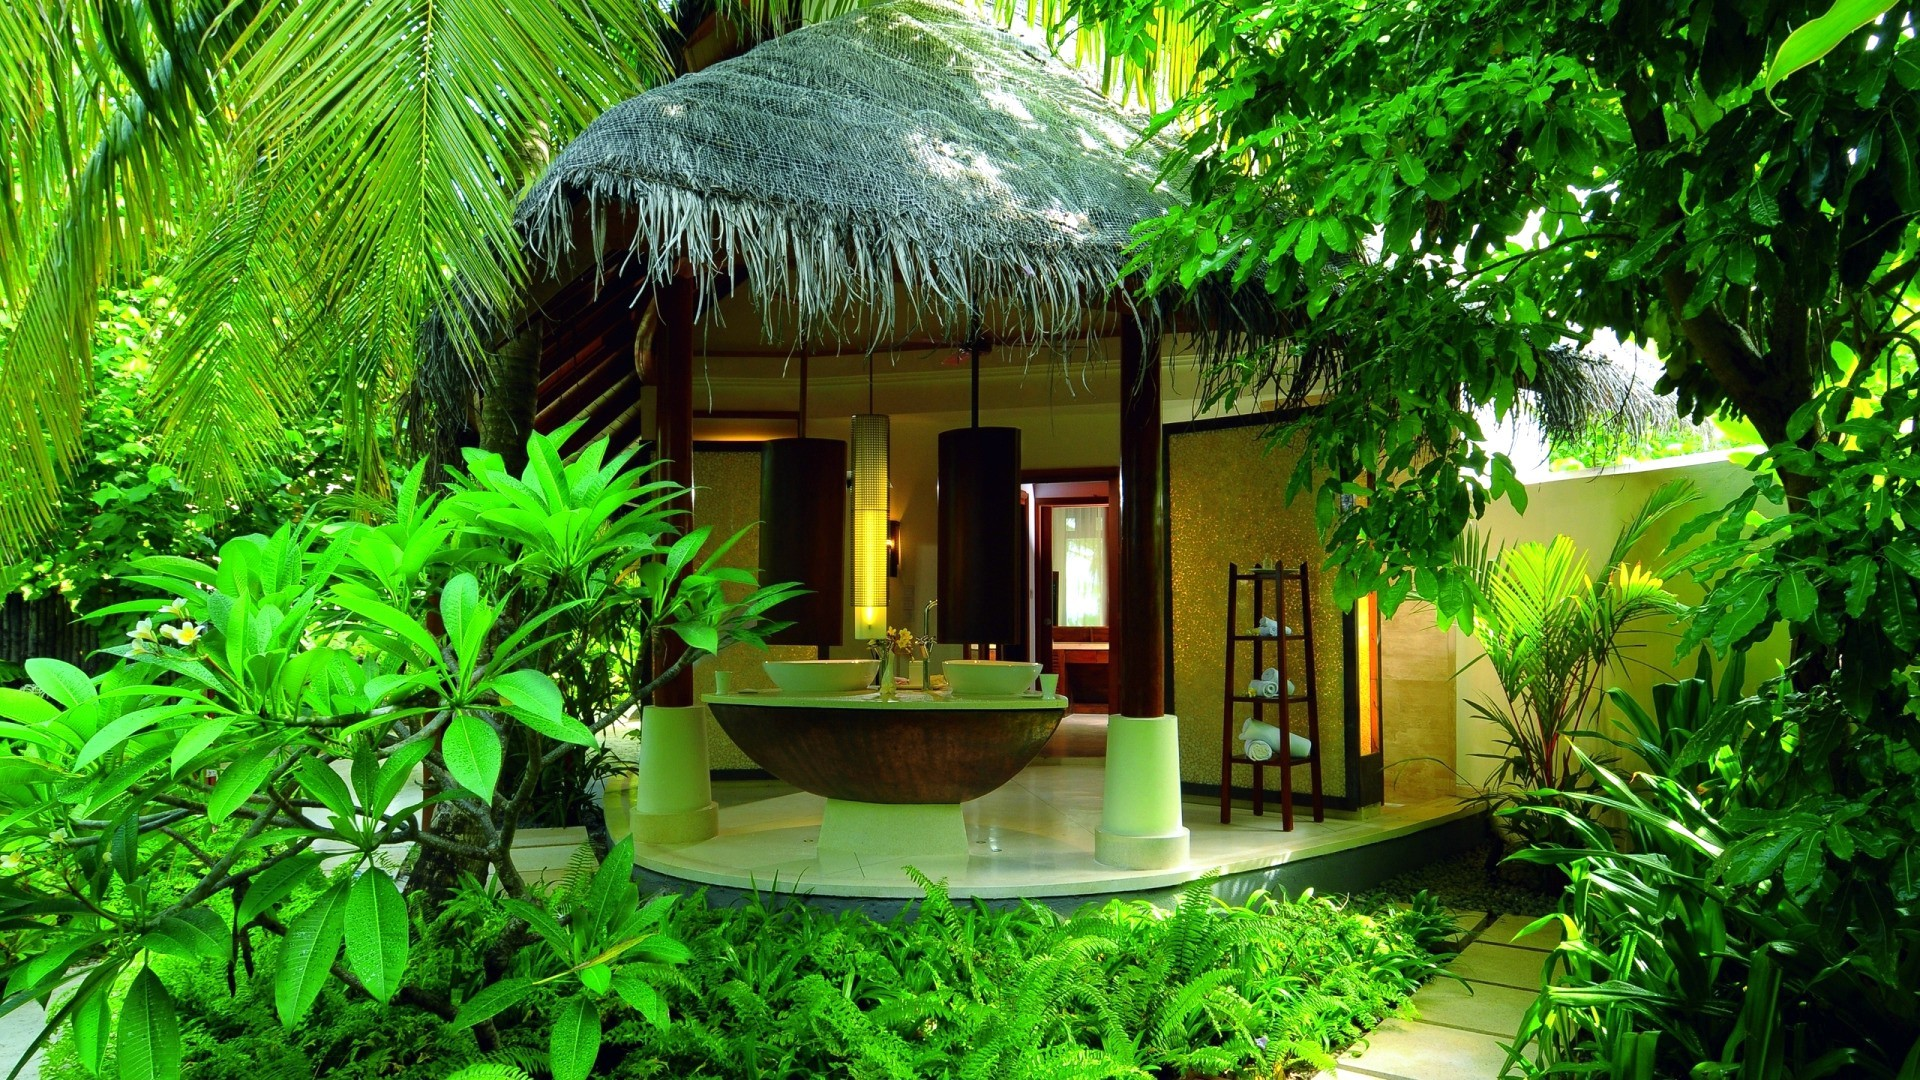 picture: spa, bungalow, summer, hotel, relaxation, jungle (image)